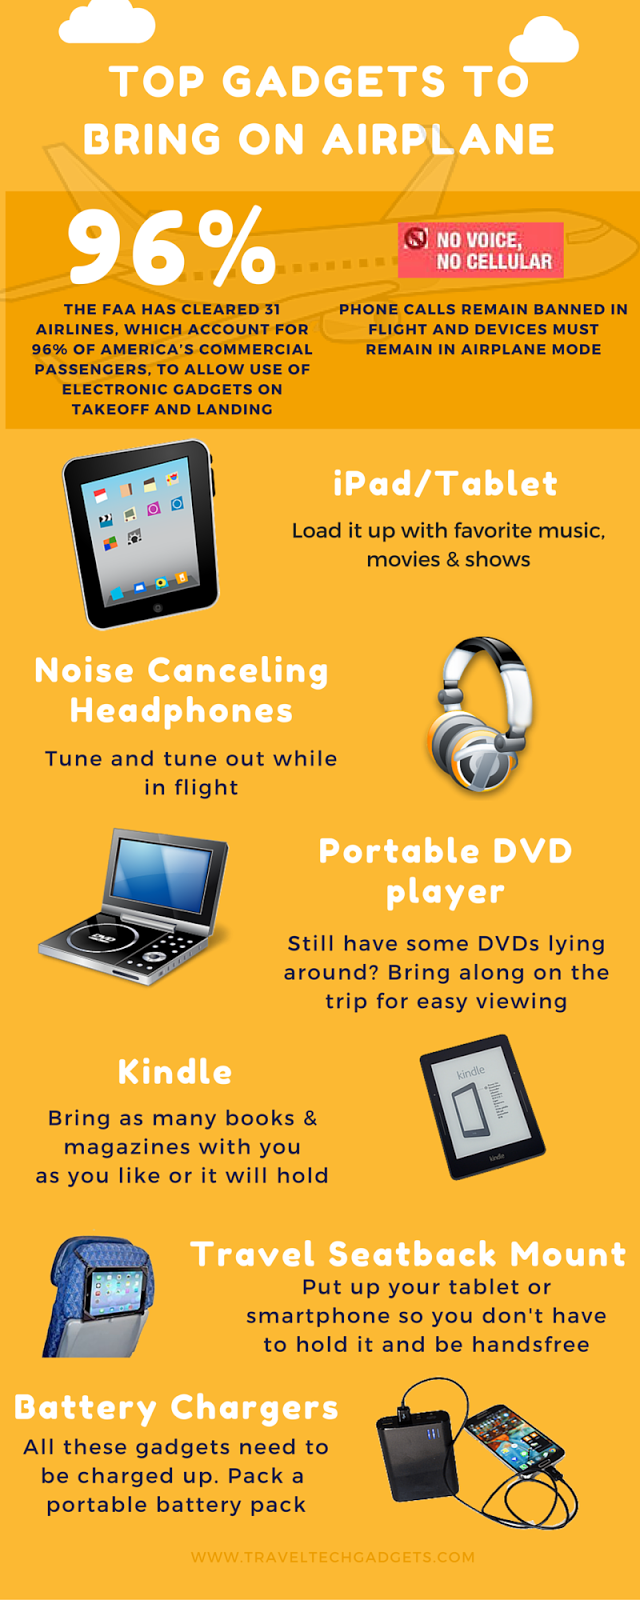 Top Gadgets To Bring on Airplane